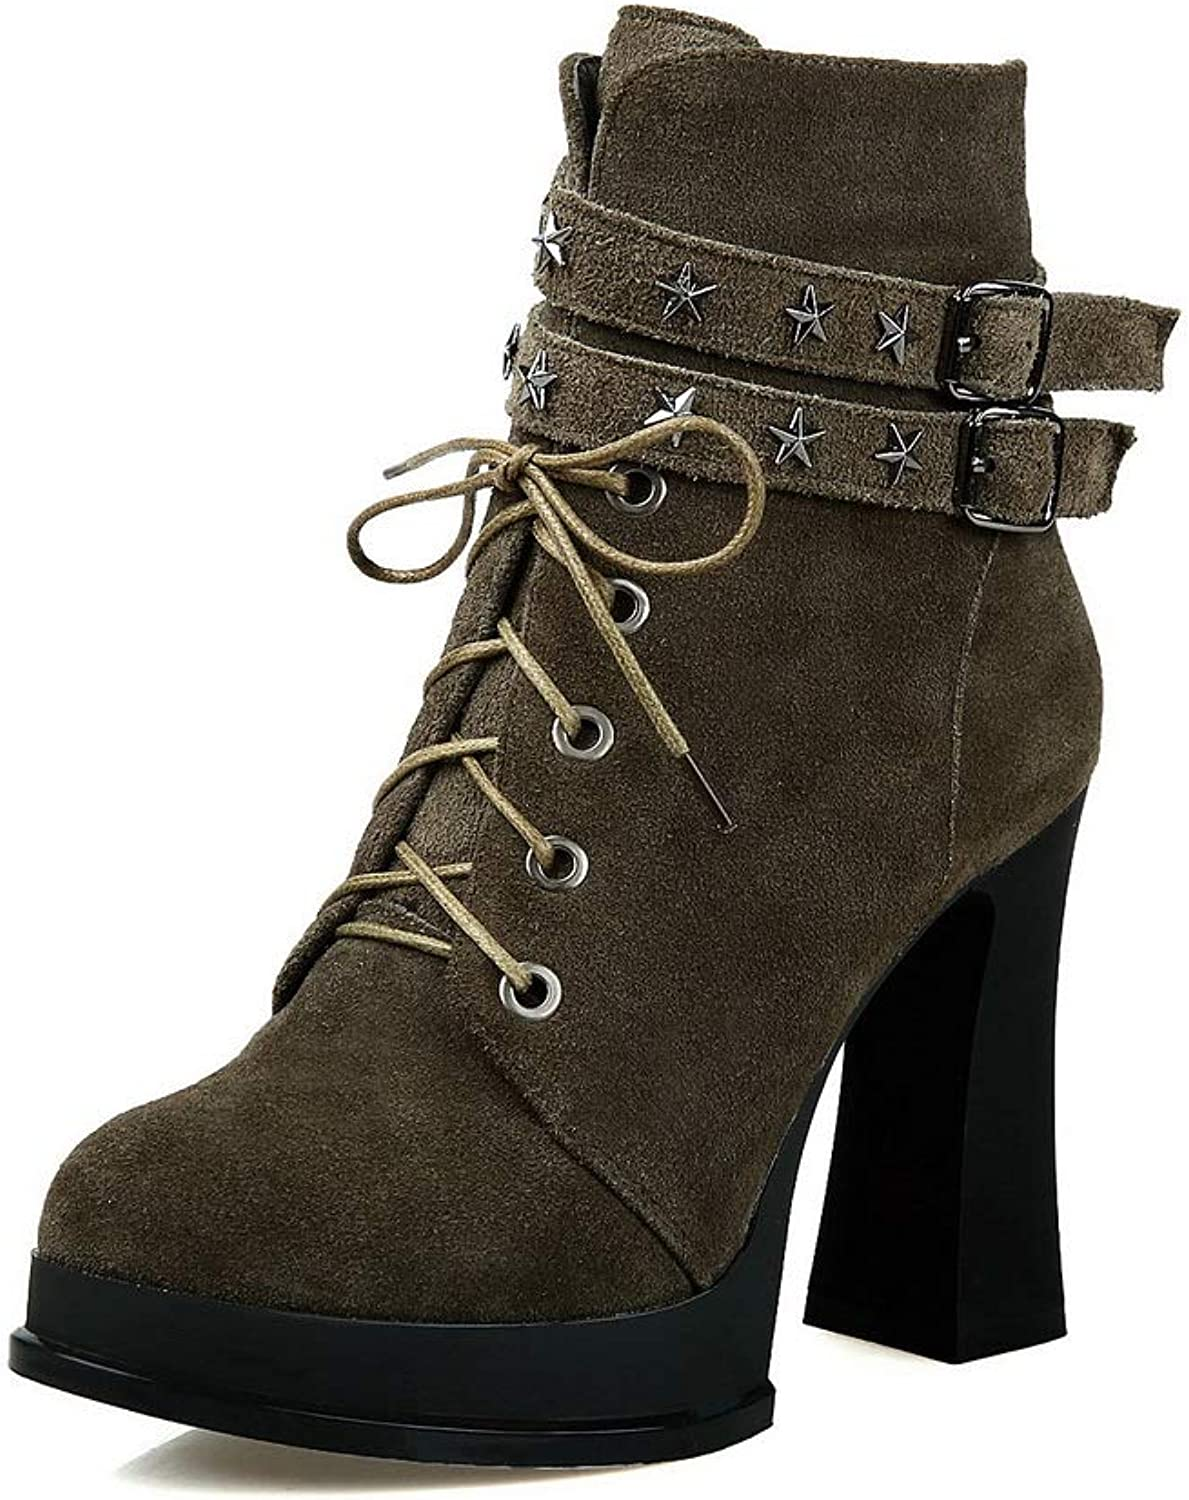 1TO9 Womens Solid Platform Bucket-Style Urethane Boots MNS03090